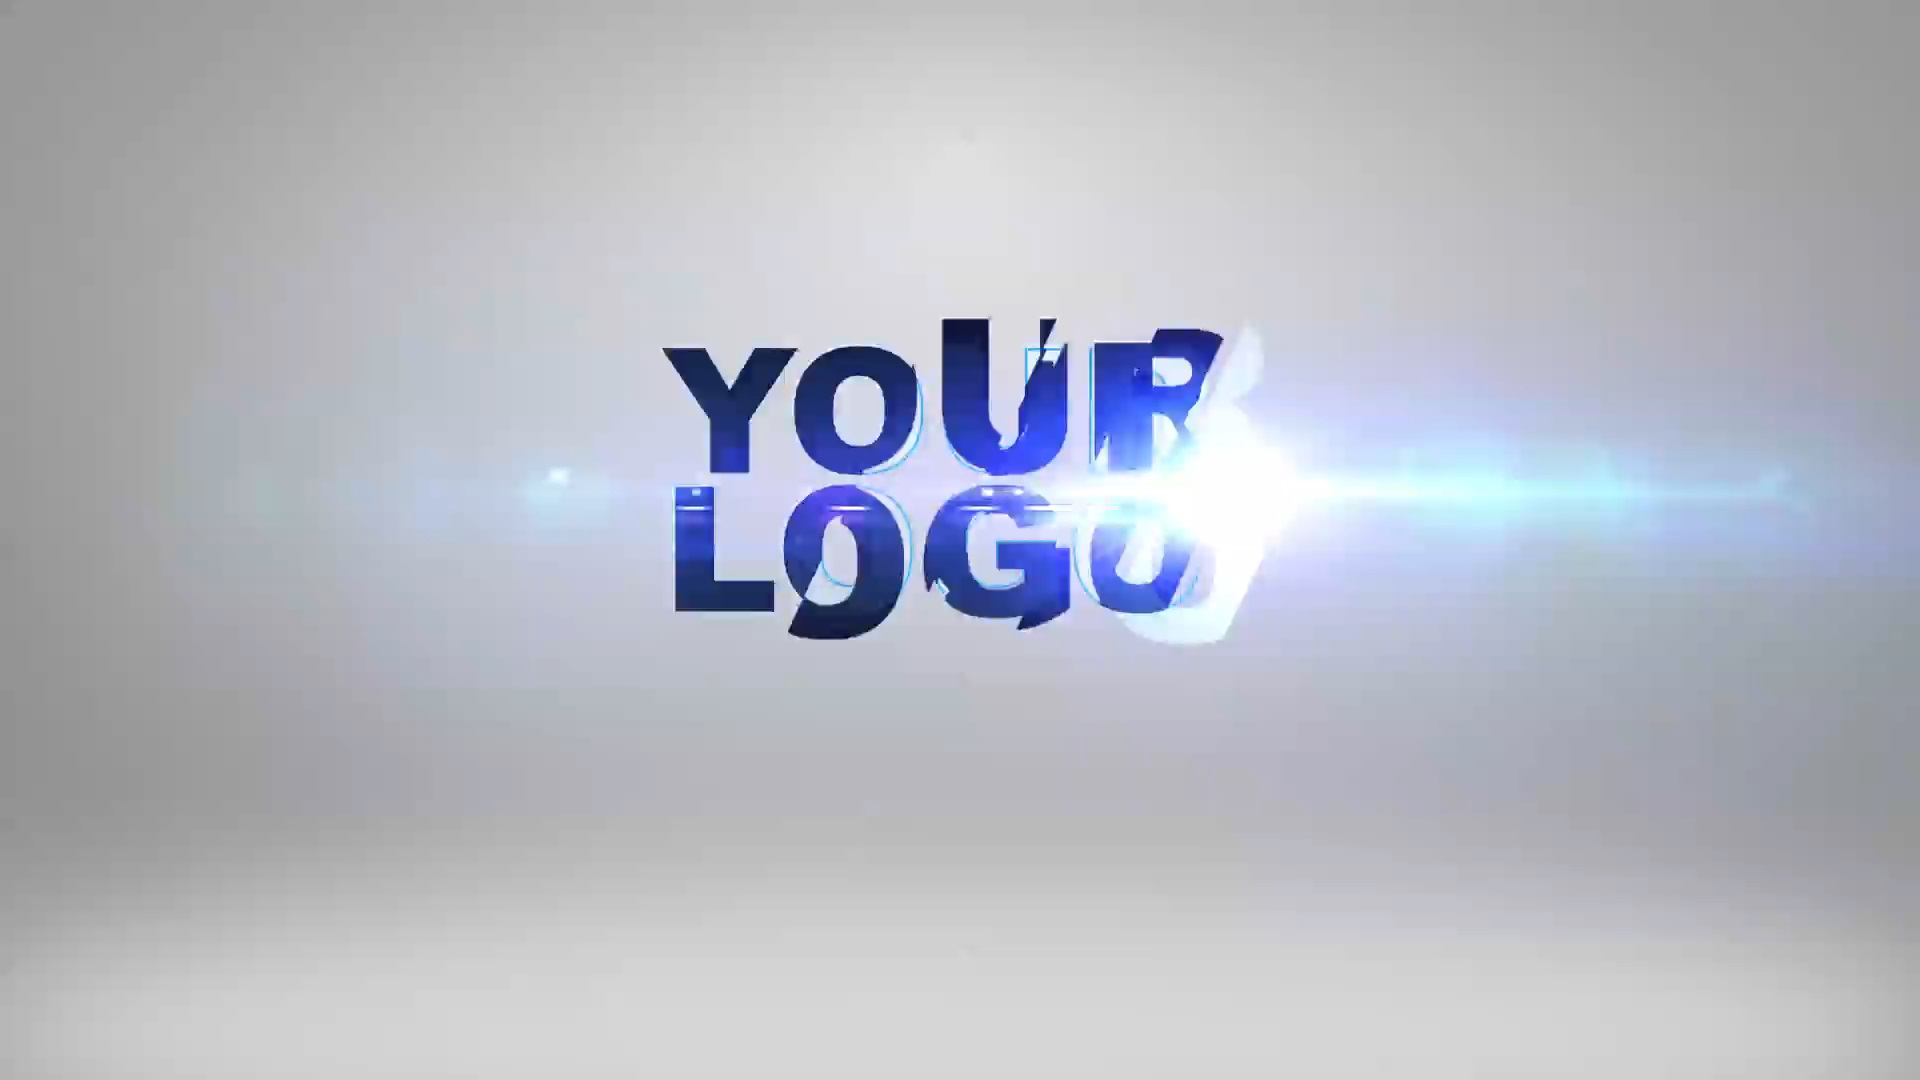 3D Video logo intro Buy two get two Free for 5